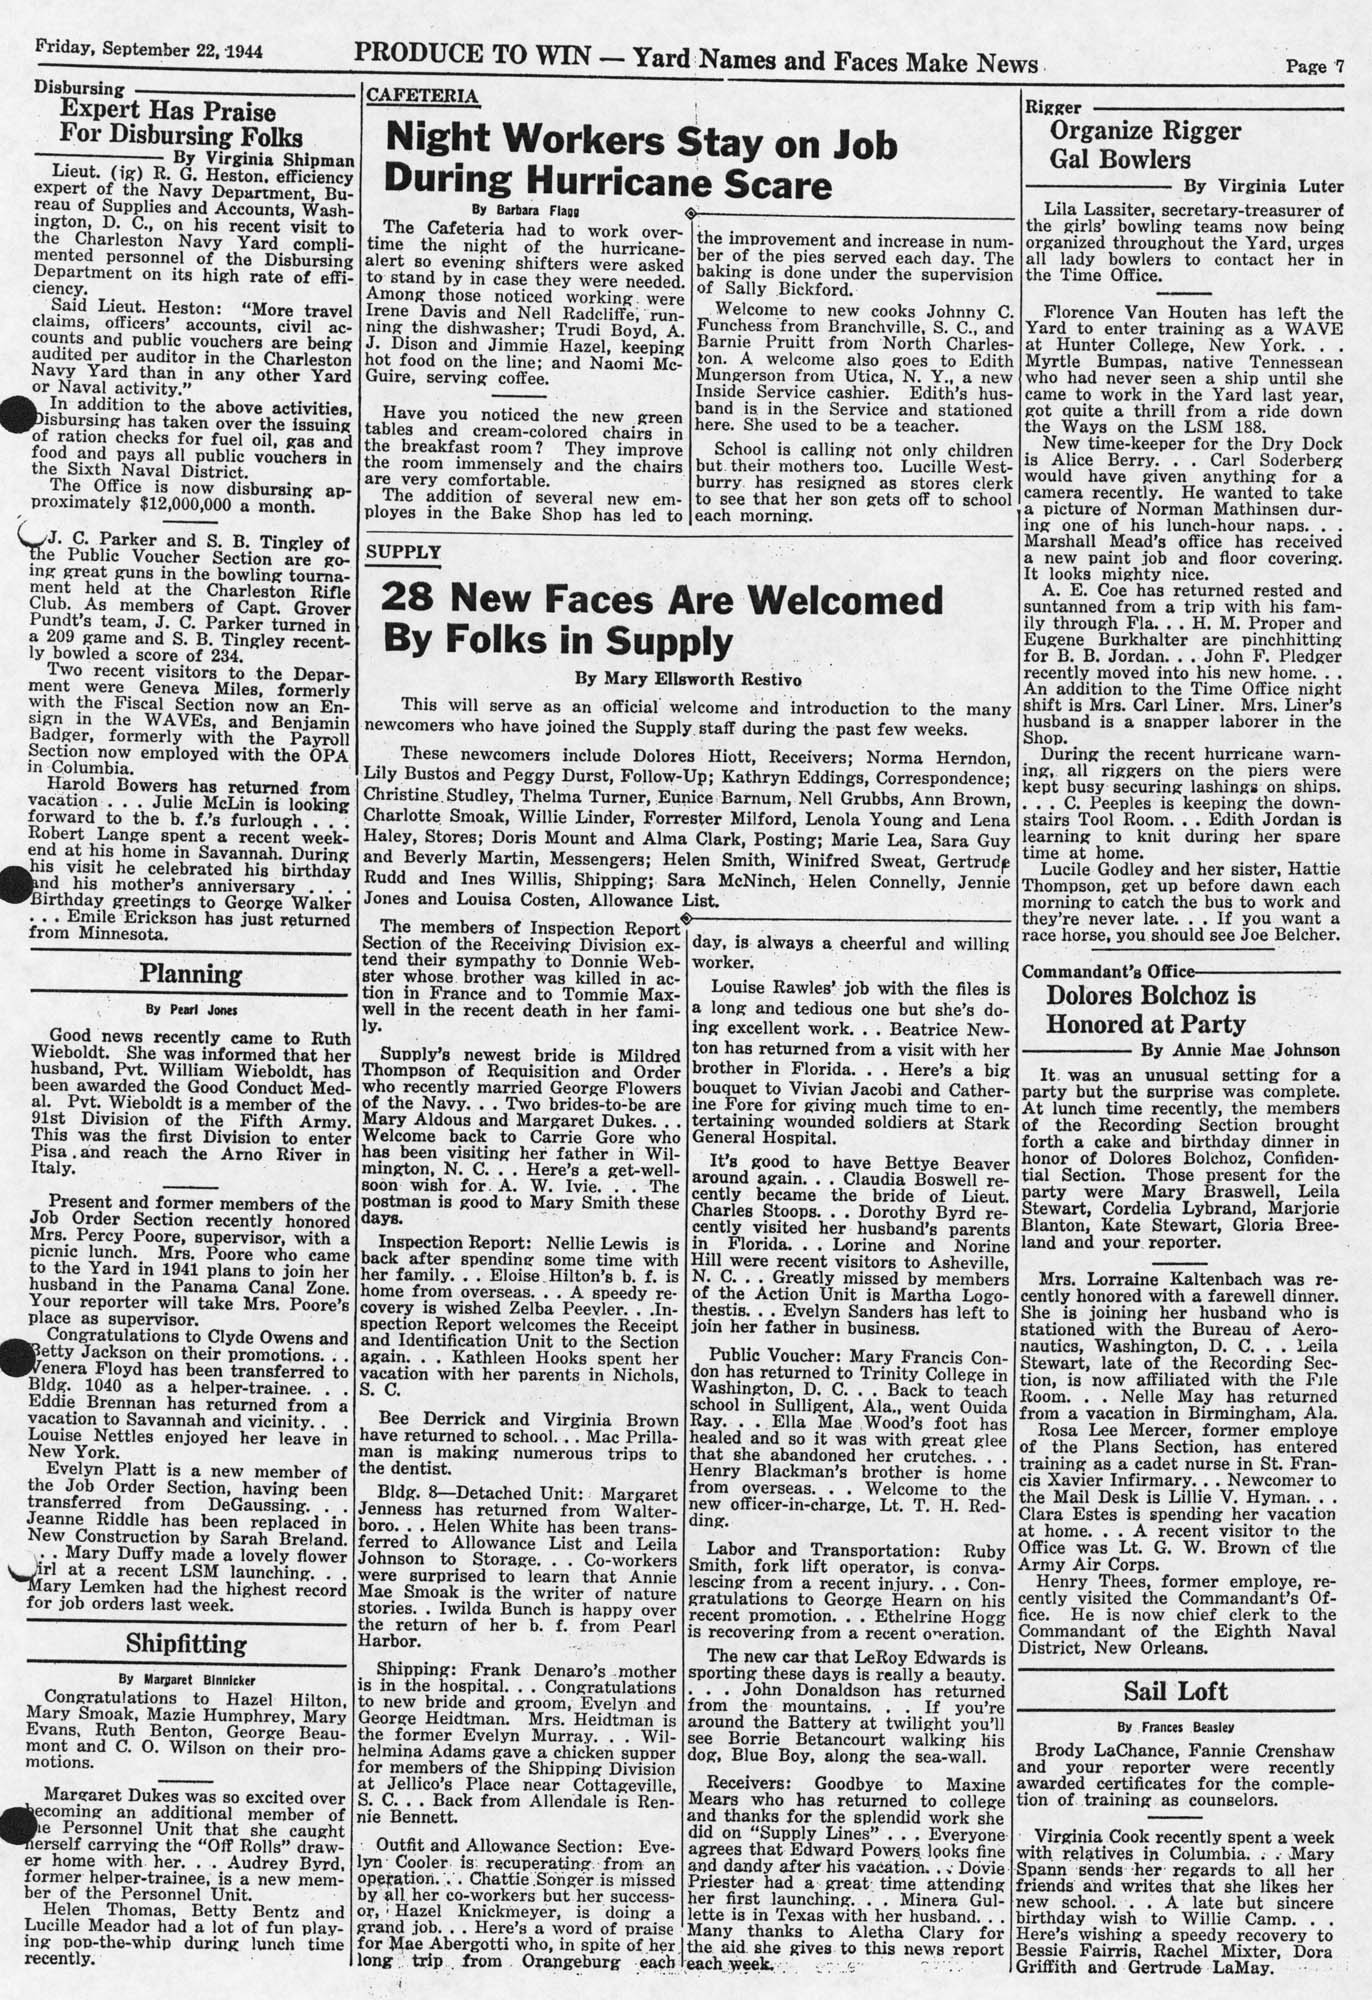 Produce to Win!, Volume 3, Edition 8, page vii